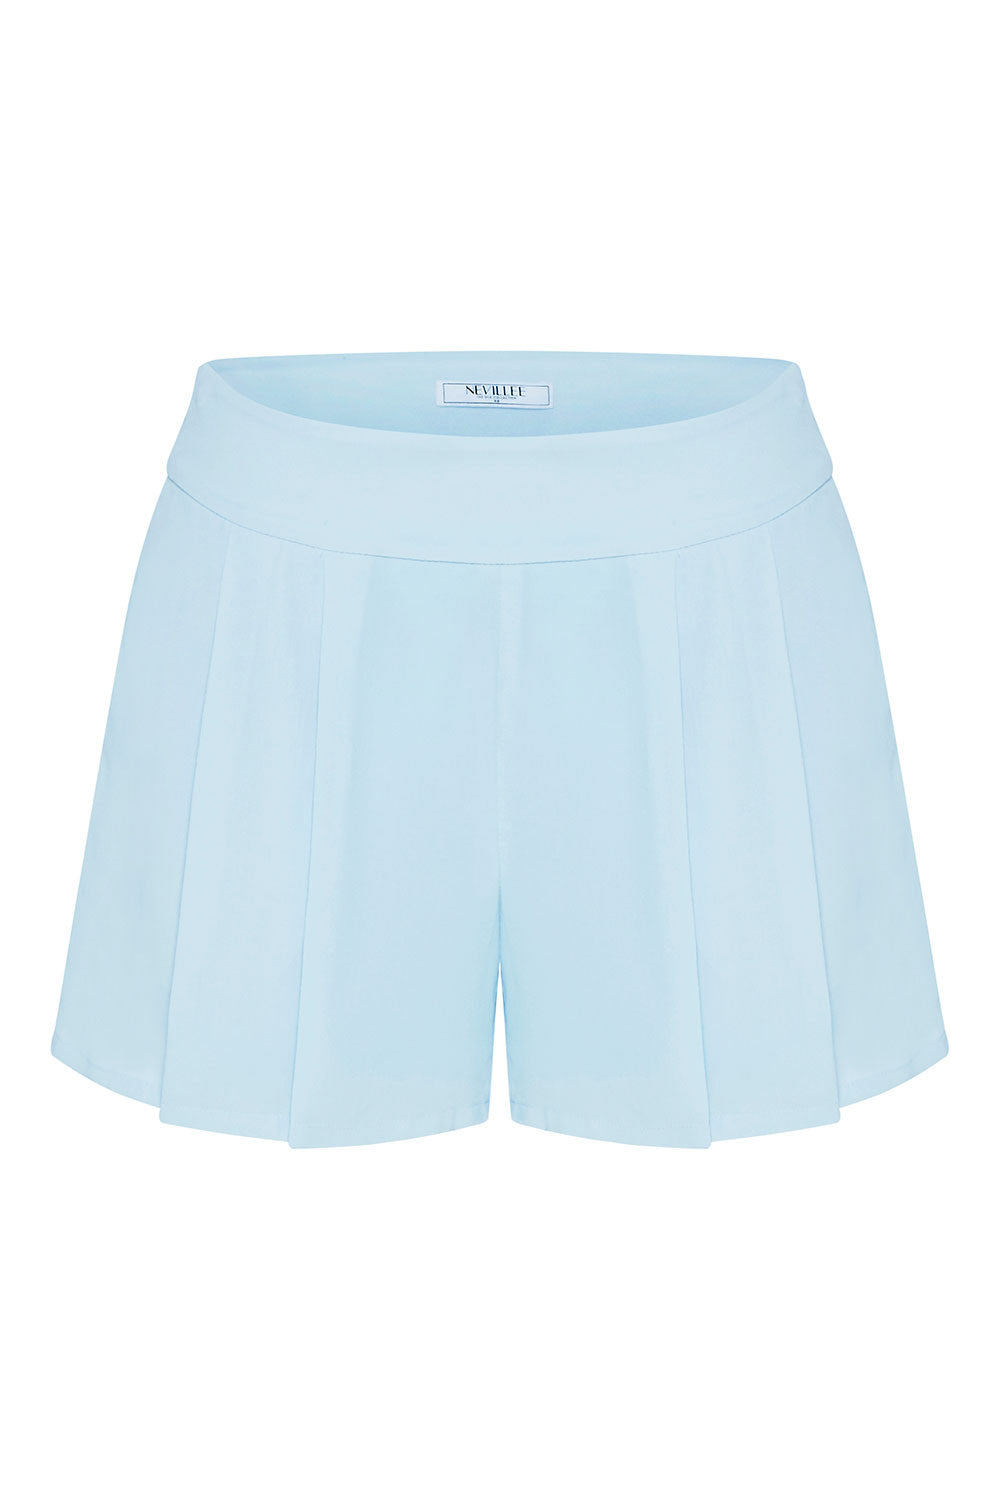 SILK SHORTS - SKY BLUE